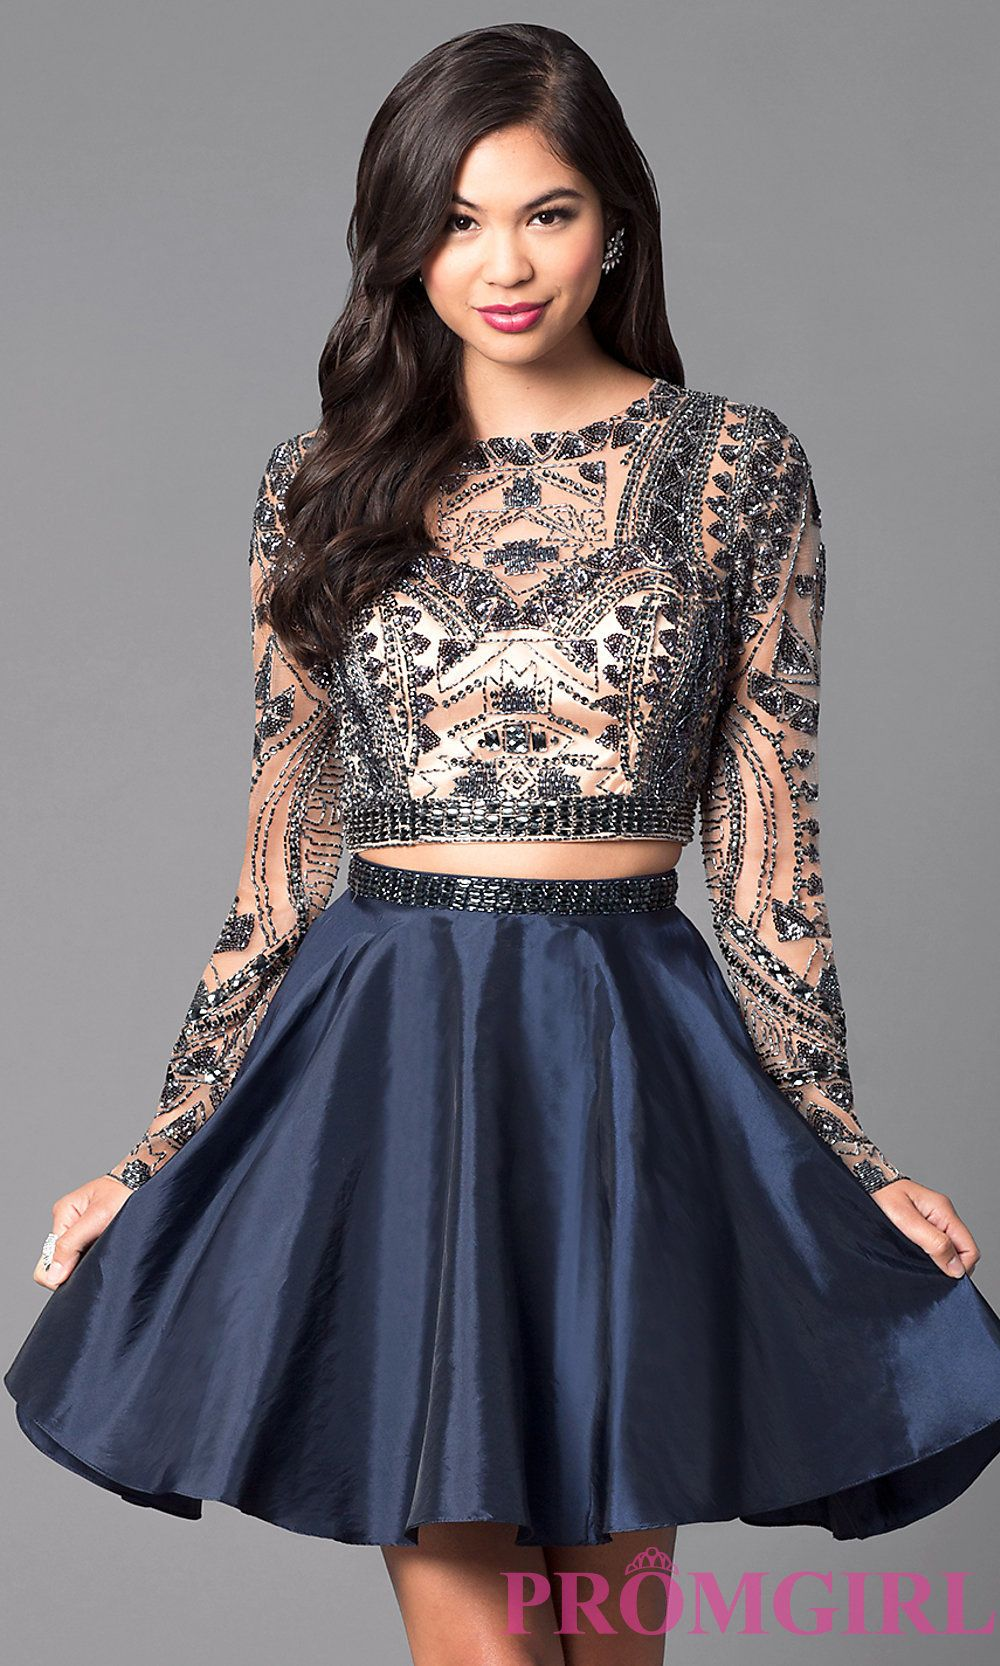 a06676f6635 Two-Piece Short Open-Back Homecoming Dress